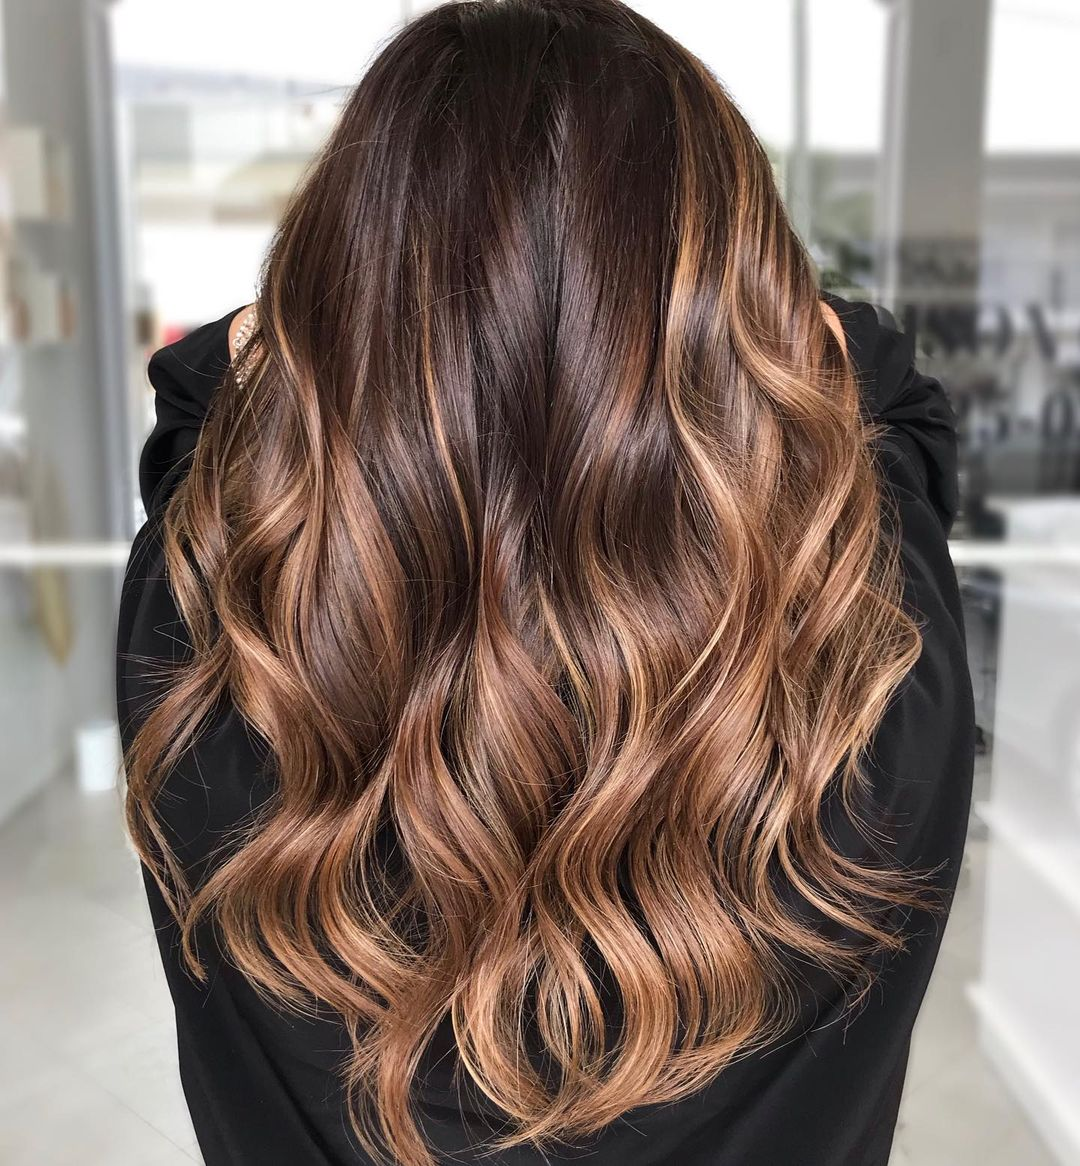 Auburn and Chocolate Brown Balayage Hair